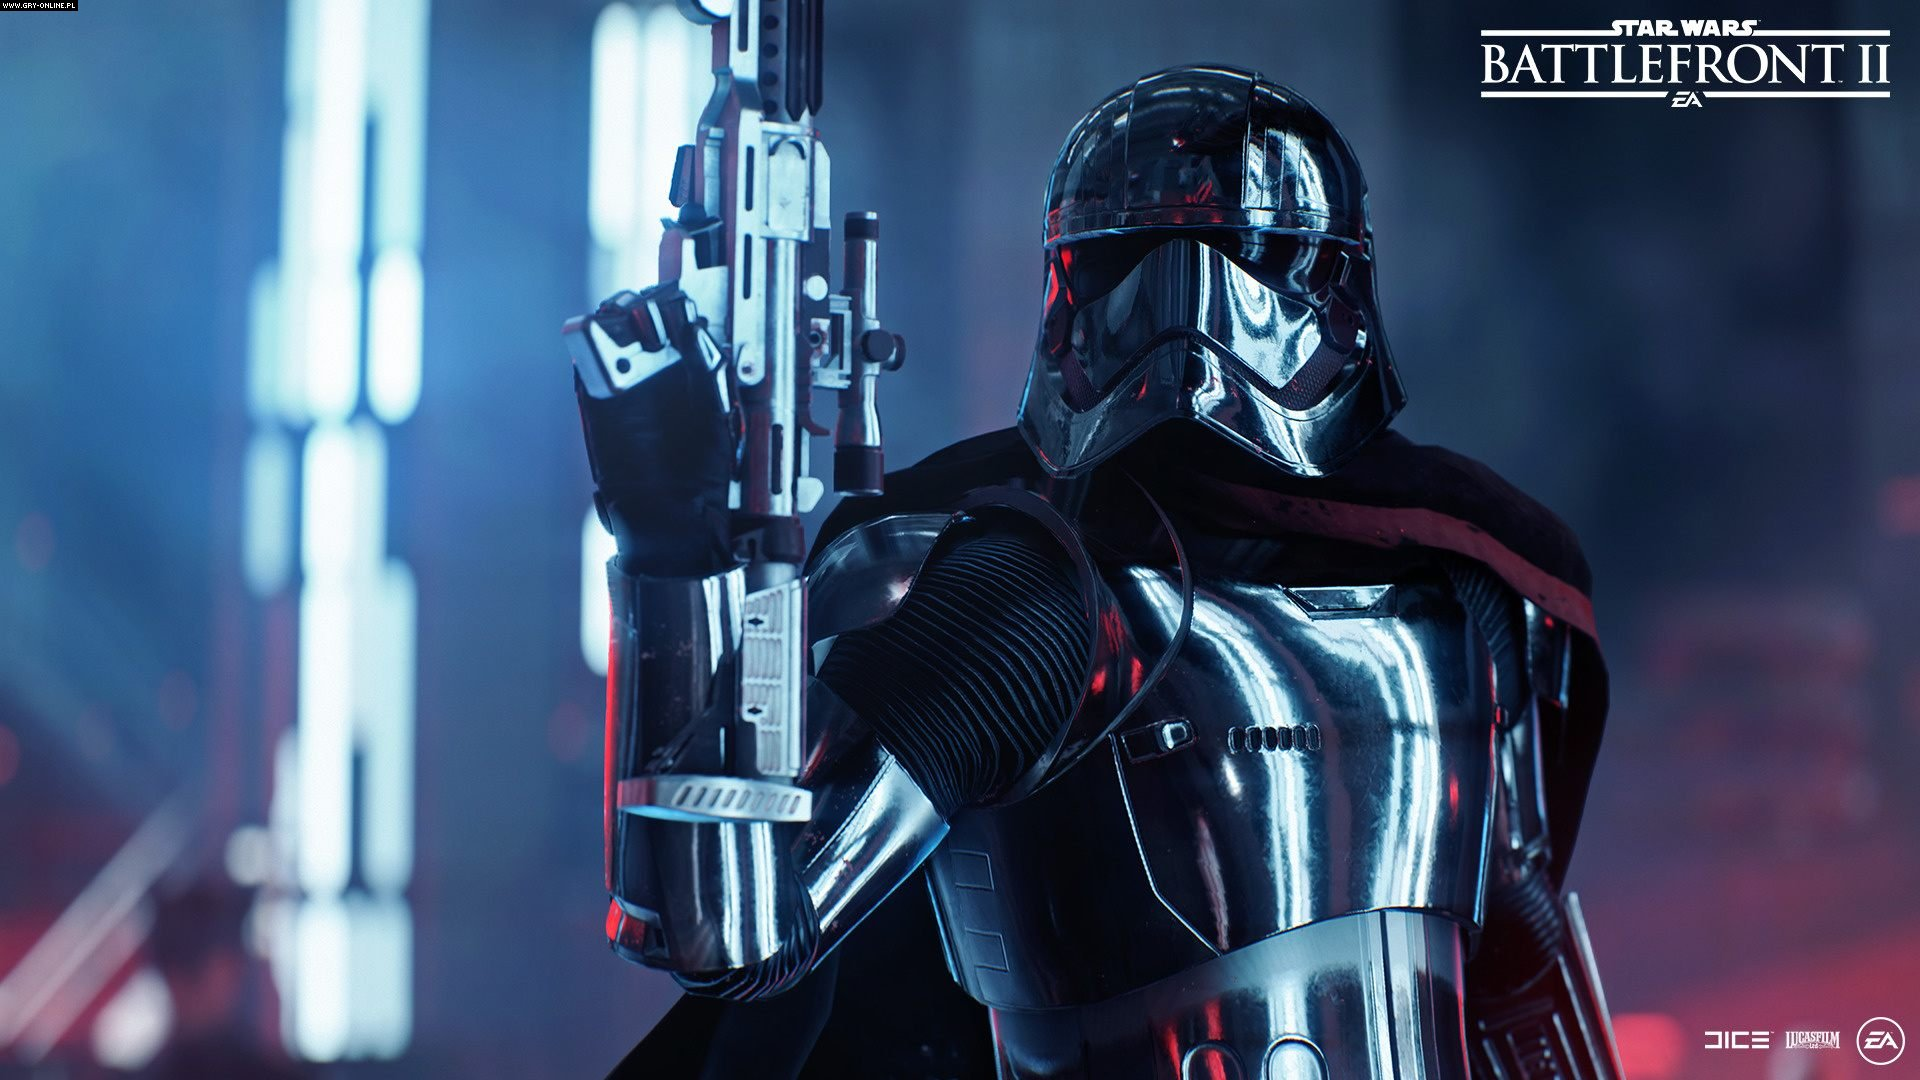 Star Wars: Battlefront II PC, PS4, XONE Games Image 5/36, EA DICE / Digital Illusions CE, Electronic Arts Inc.